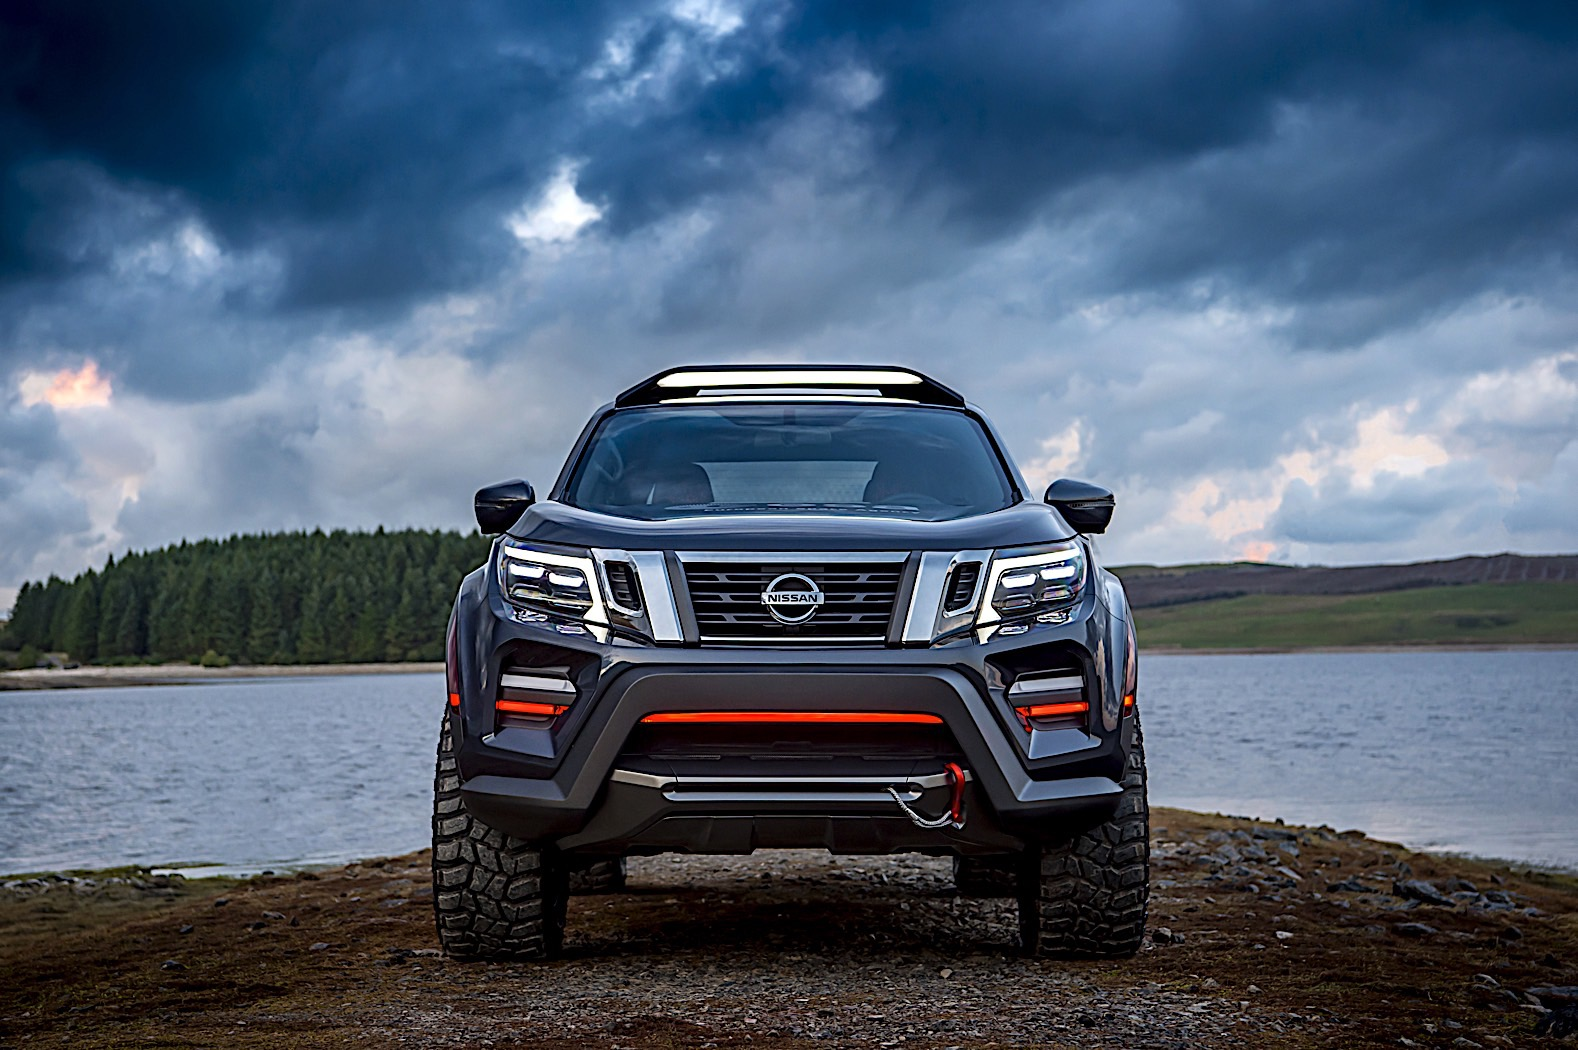 Nissan Navara Dark Sky BOLDLY goes where no telescope has gone before